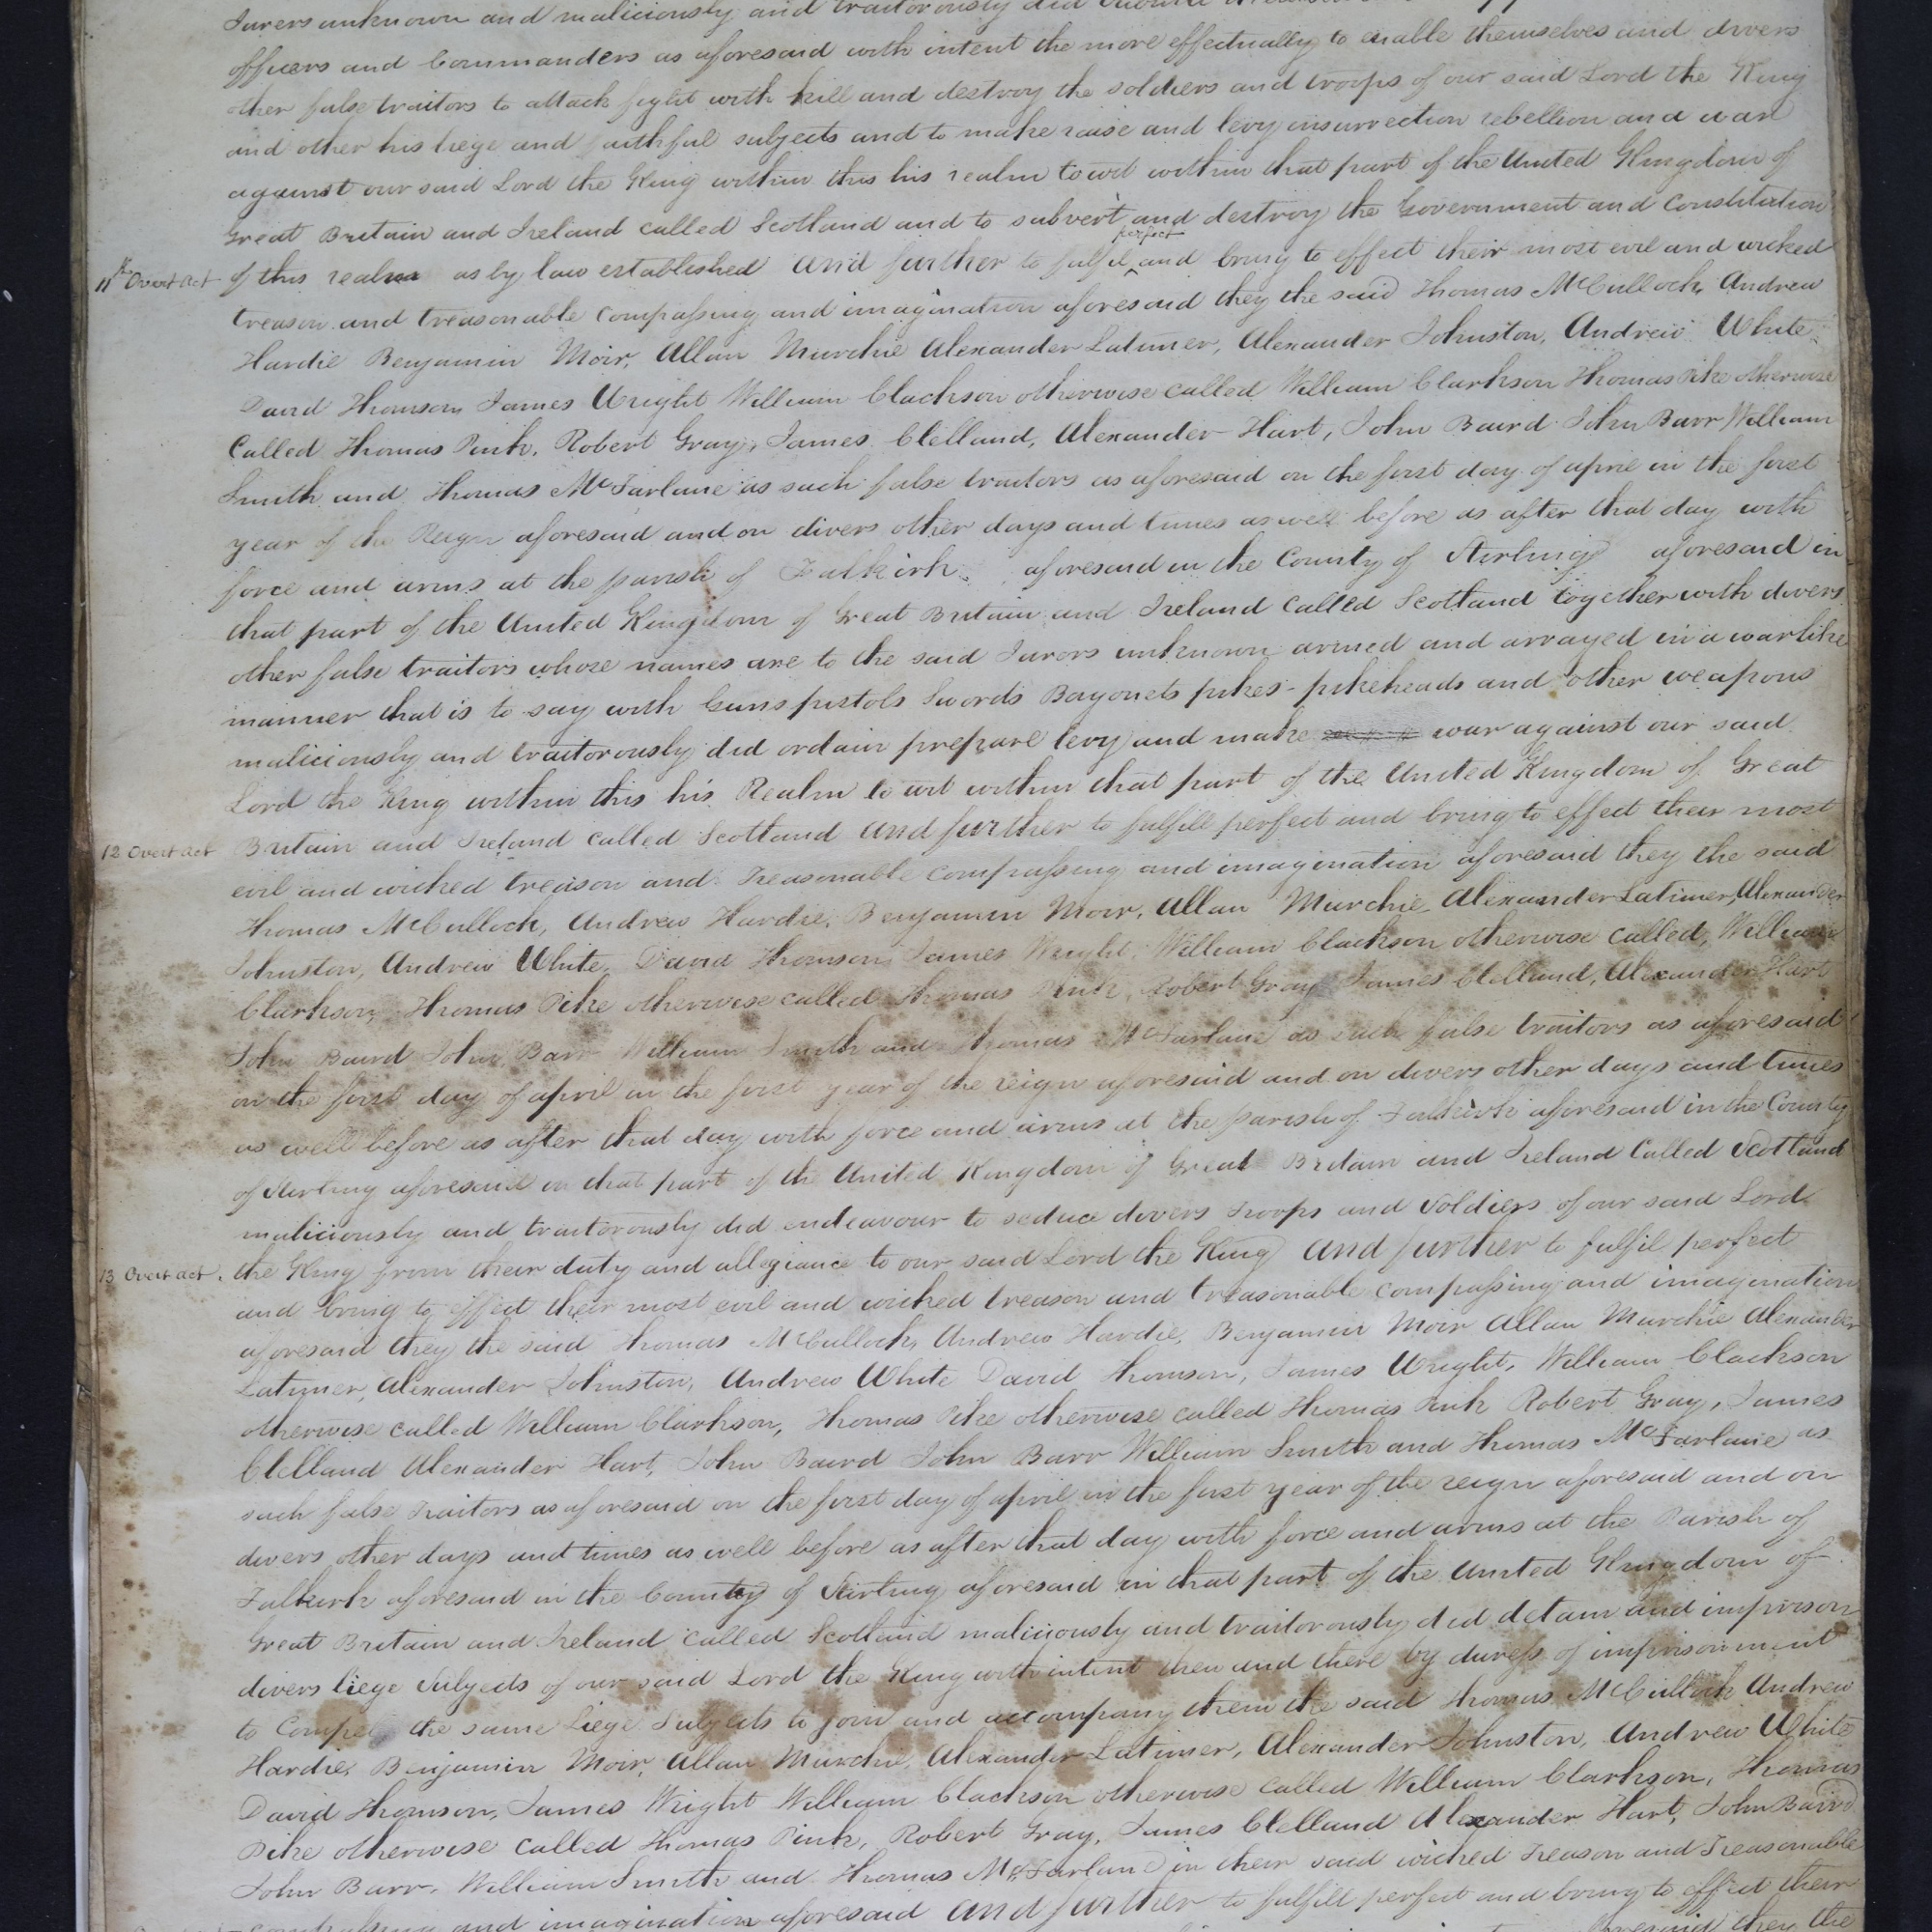 Treason trials for the County of Stirling, the Bonnymuir case. True bills brought against 18 men. National Records of Scotland, Crown copyright, JC21/2/1 p5